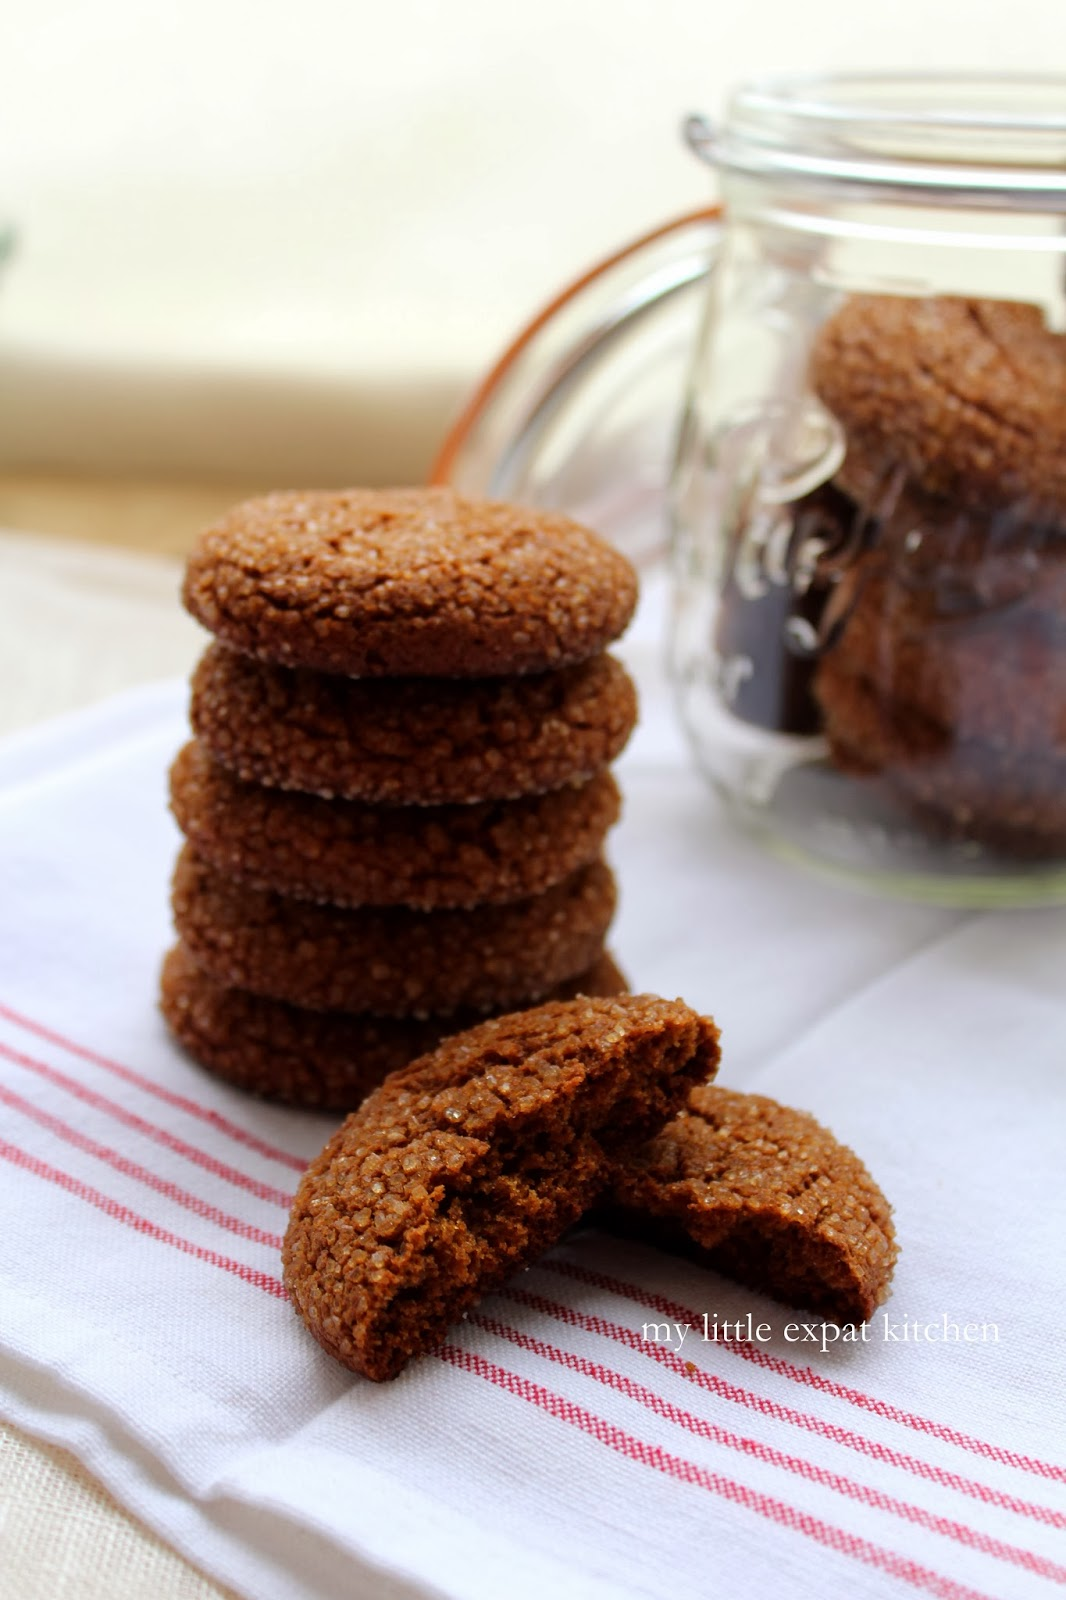 My Little Expat Kitchen: Chewy molasses spice cookies